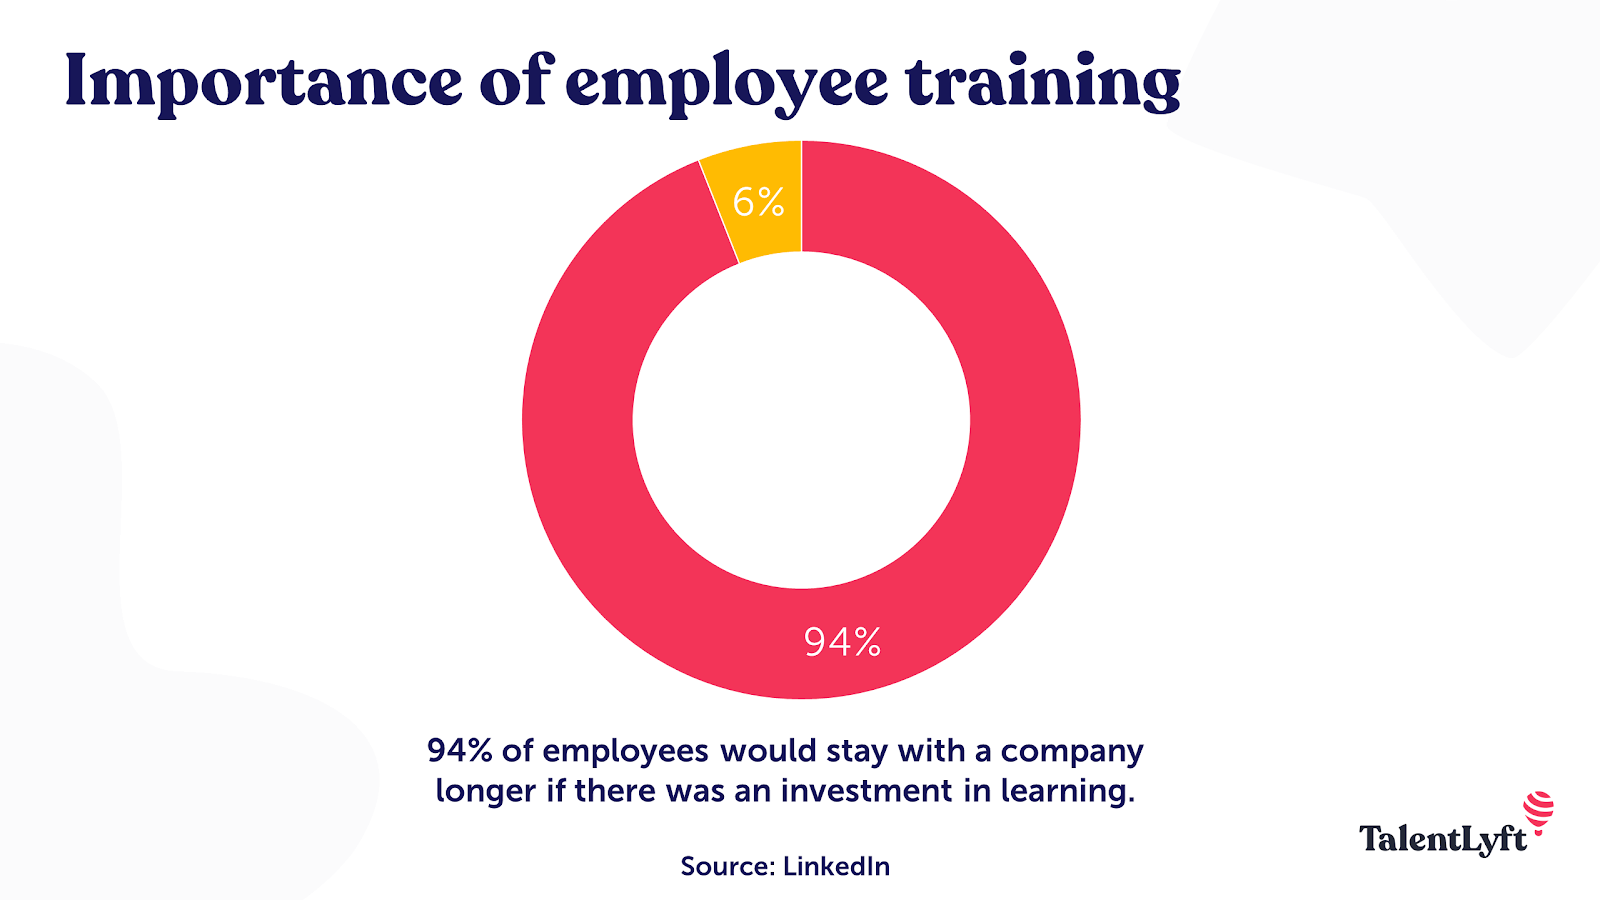 Employee training - an important benefit for remote employees